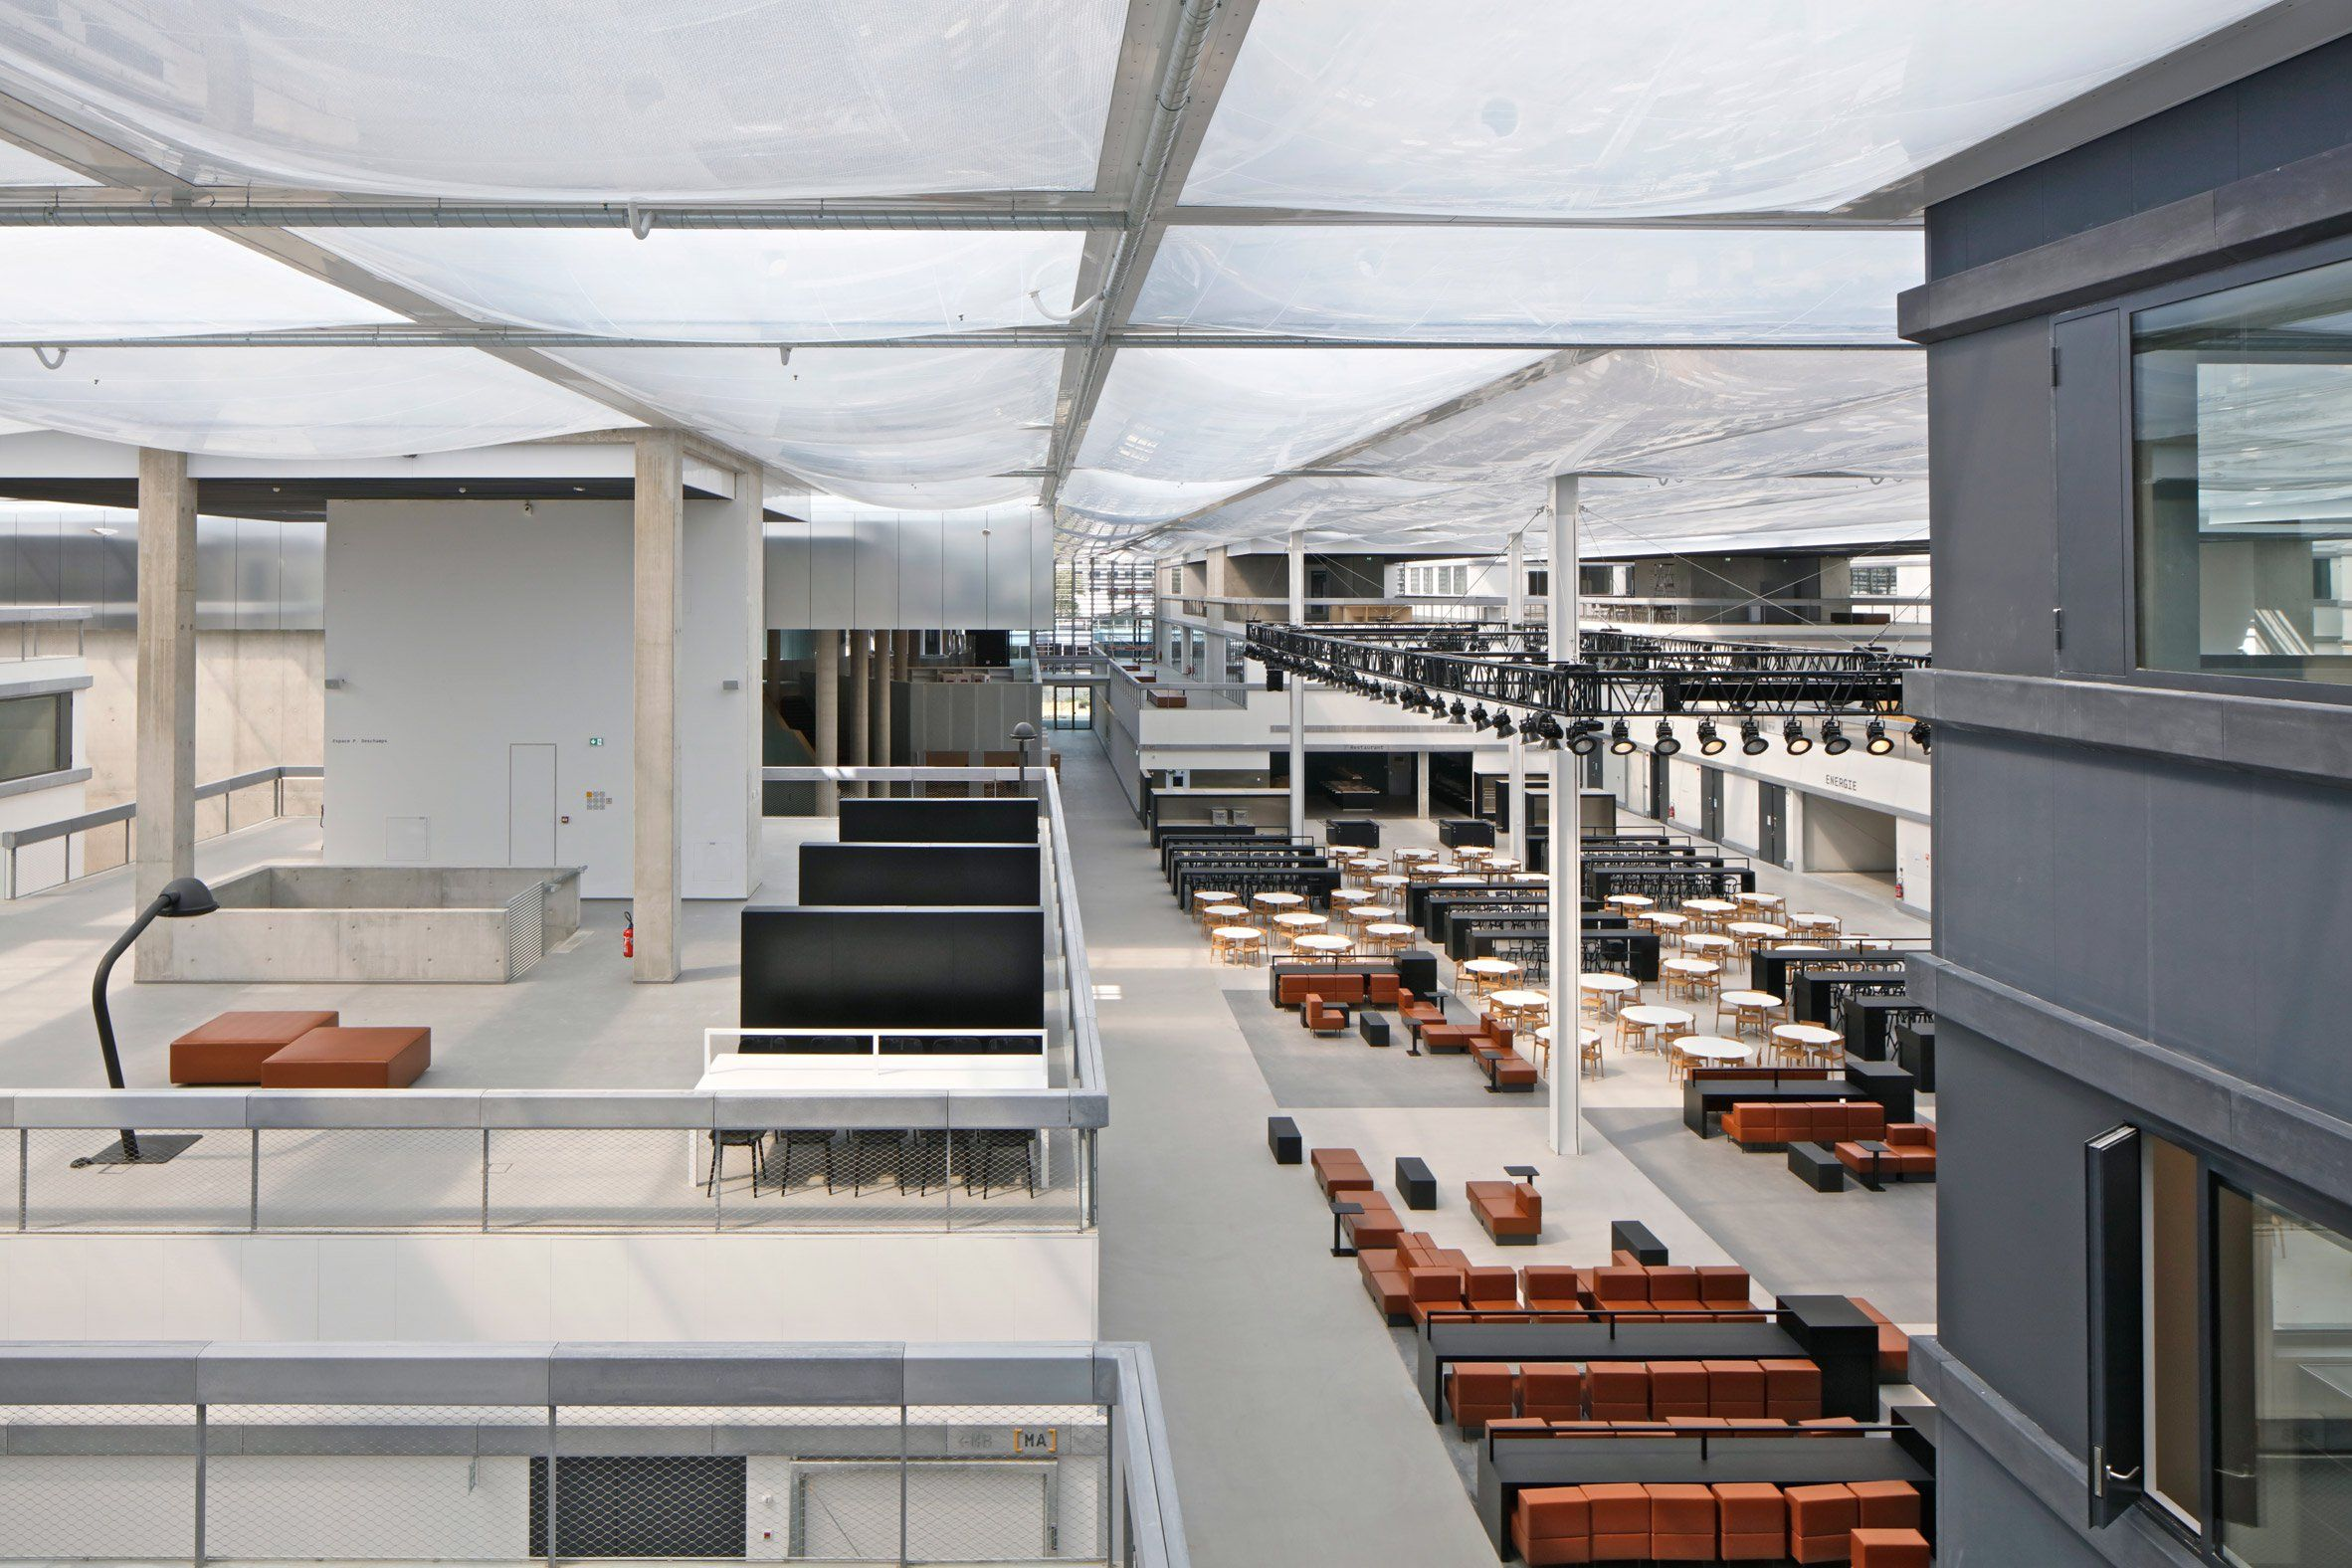 OMA builds cityinspired engineering school for Ecole Centrale Paris